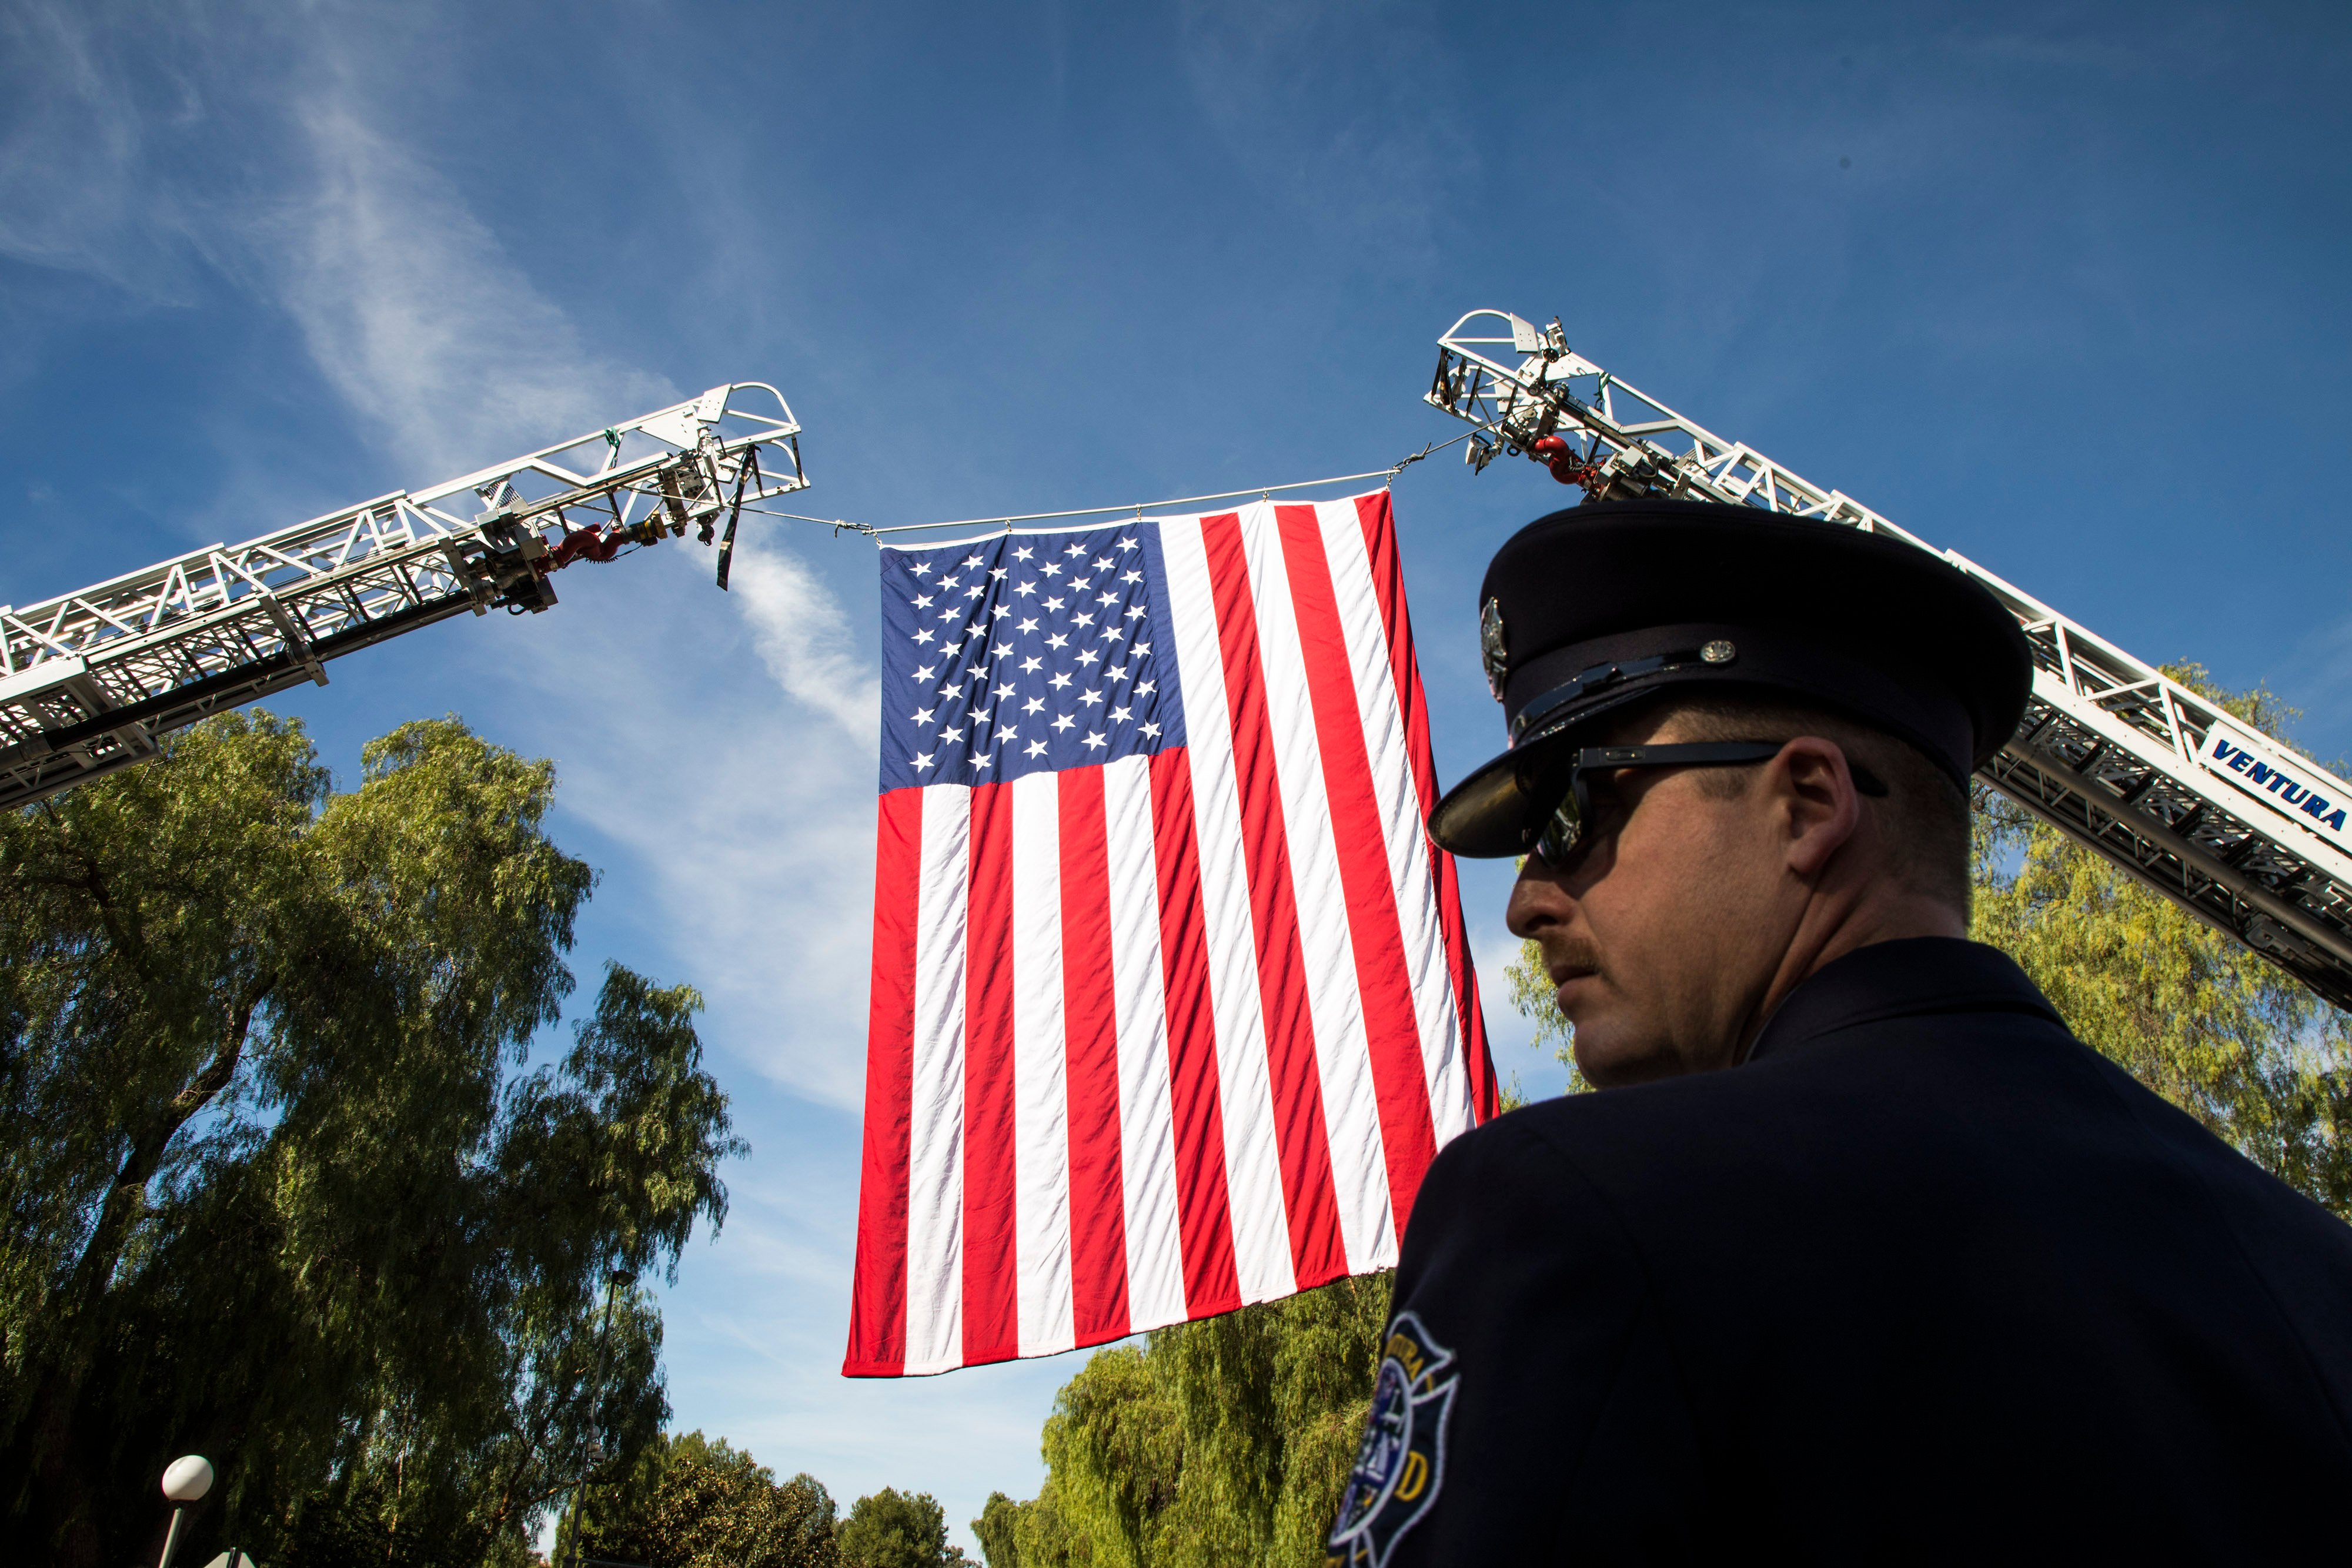 Stanford Frat Told Their American Flag Was 'Offensive' By Admin, Hangs Much Bigger Flag